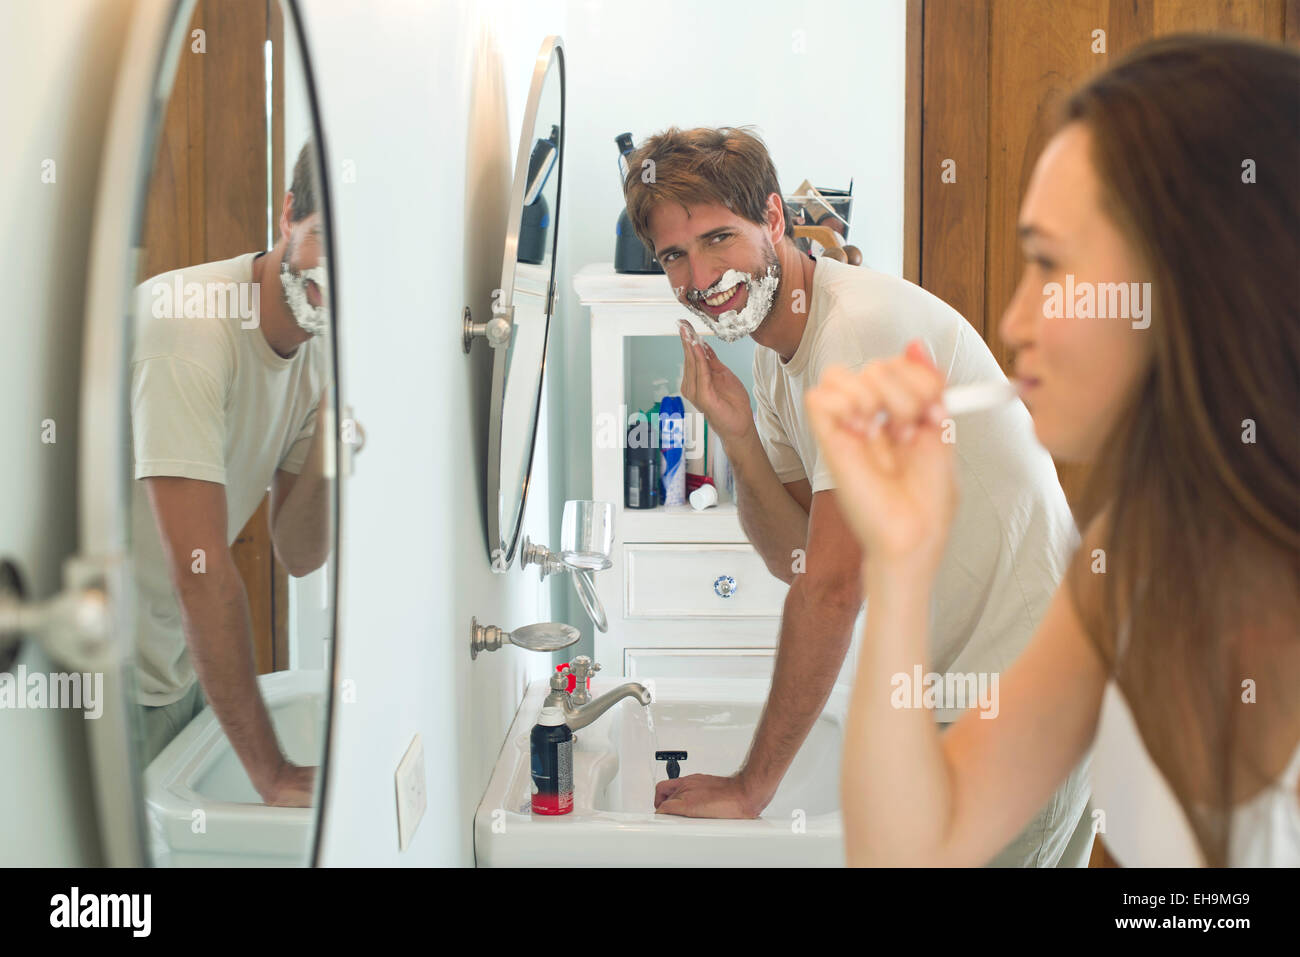 Woman brushing teeth, husband shaving - Stock Image